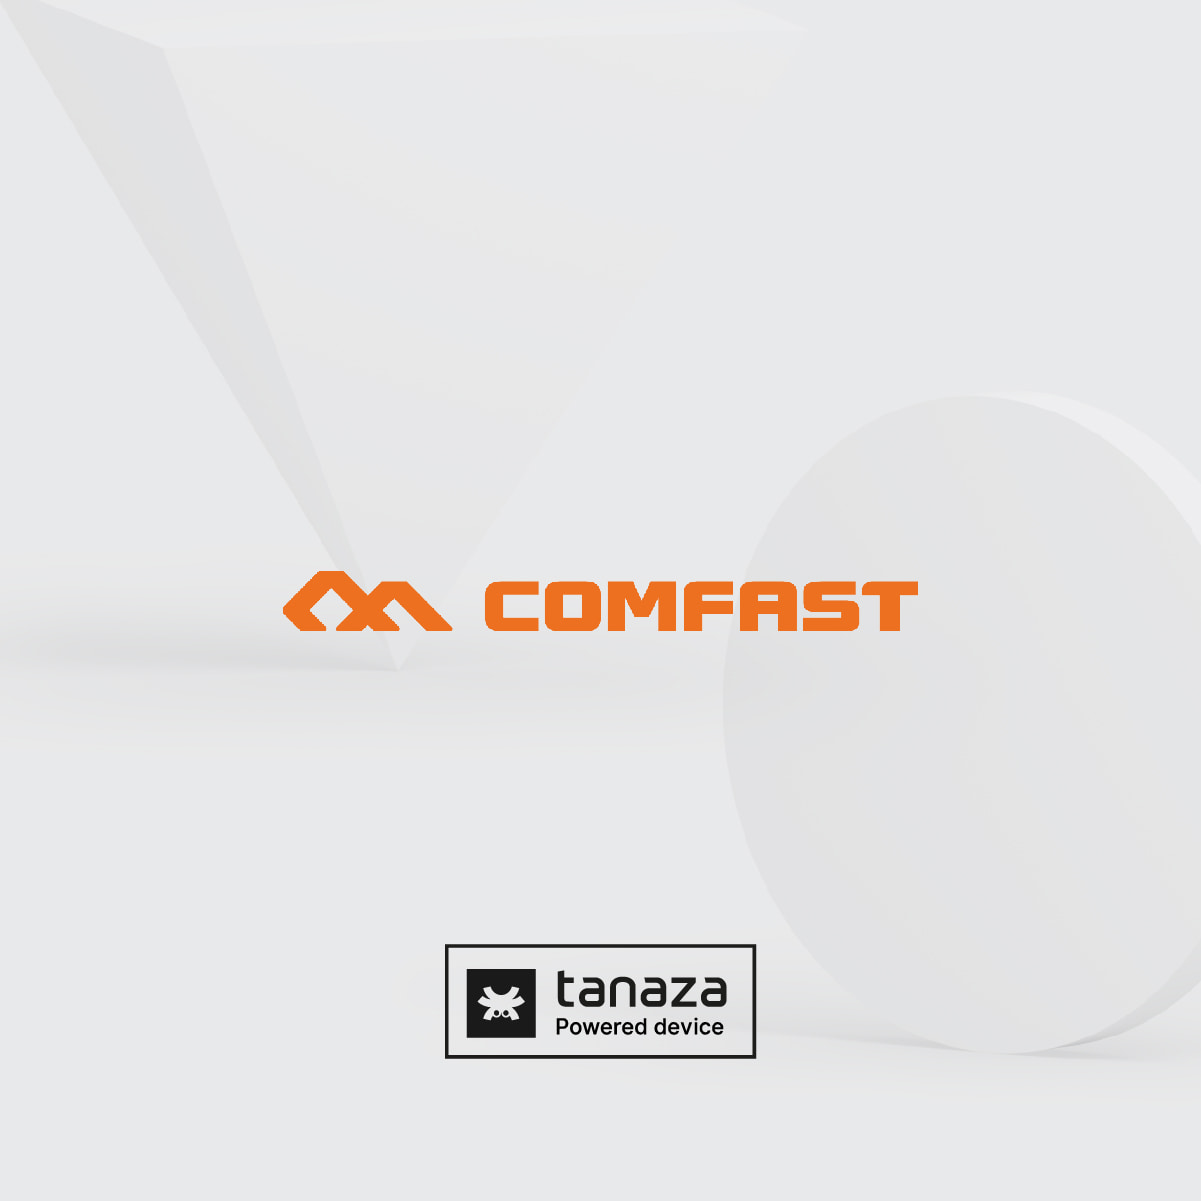 Tanaza and Comfast partnership